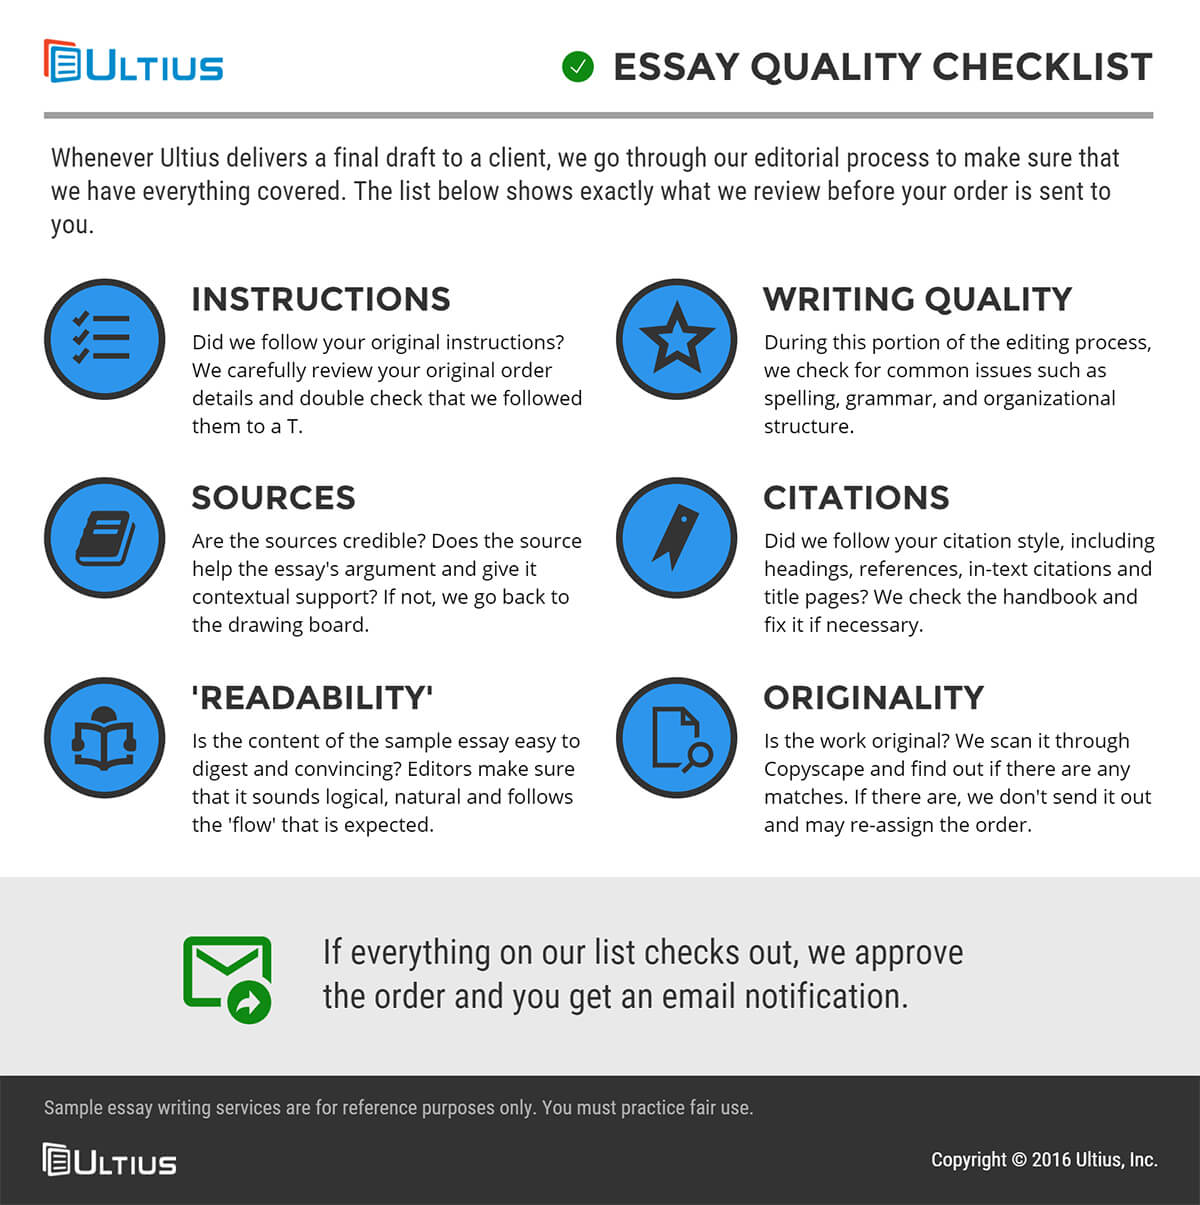 essay verify university Please check with individual programs to verify the essay questions, instructions and deadlines watch the webinar: how to create successful secondary applications · jessicapishko jessica pishko graduated with a jd from harvard law school and received an mfa from columbia university.